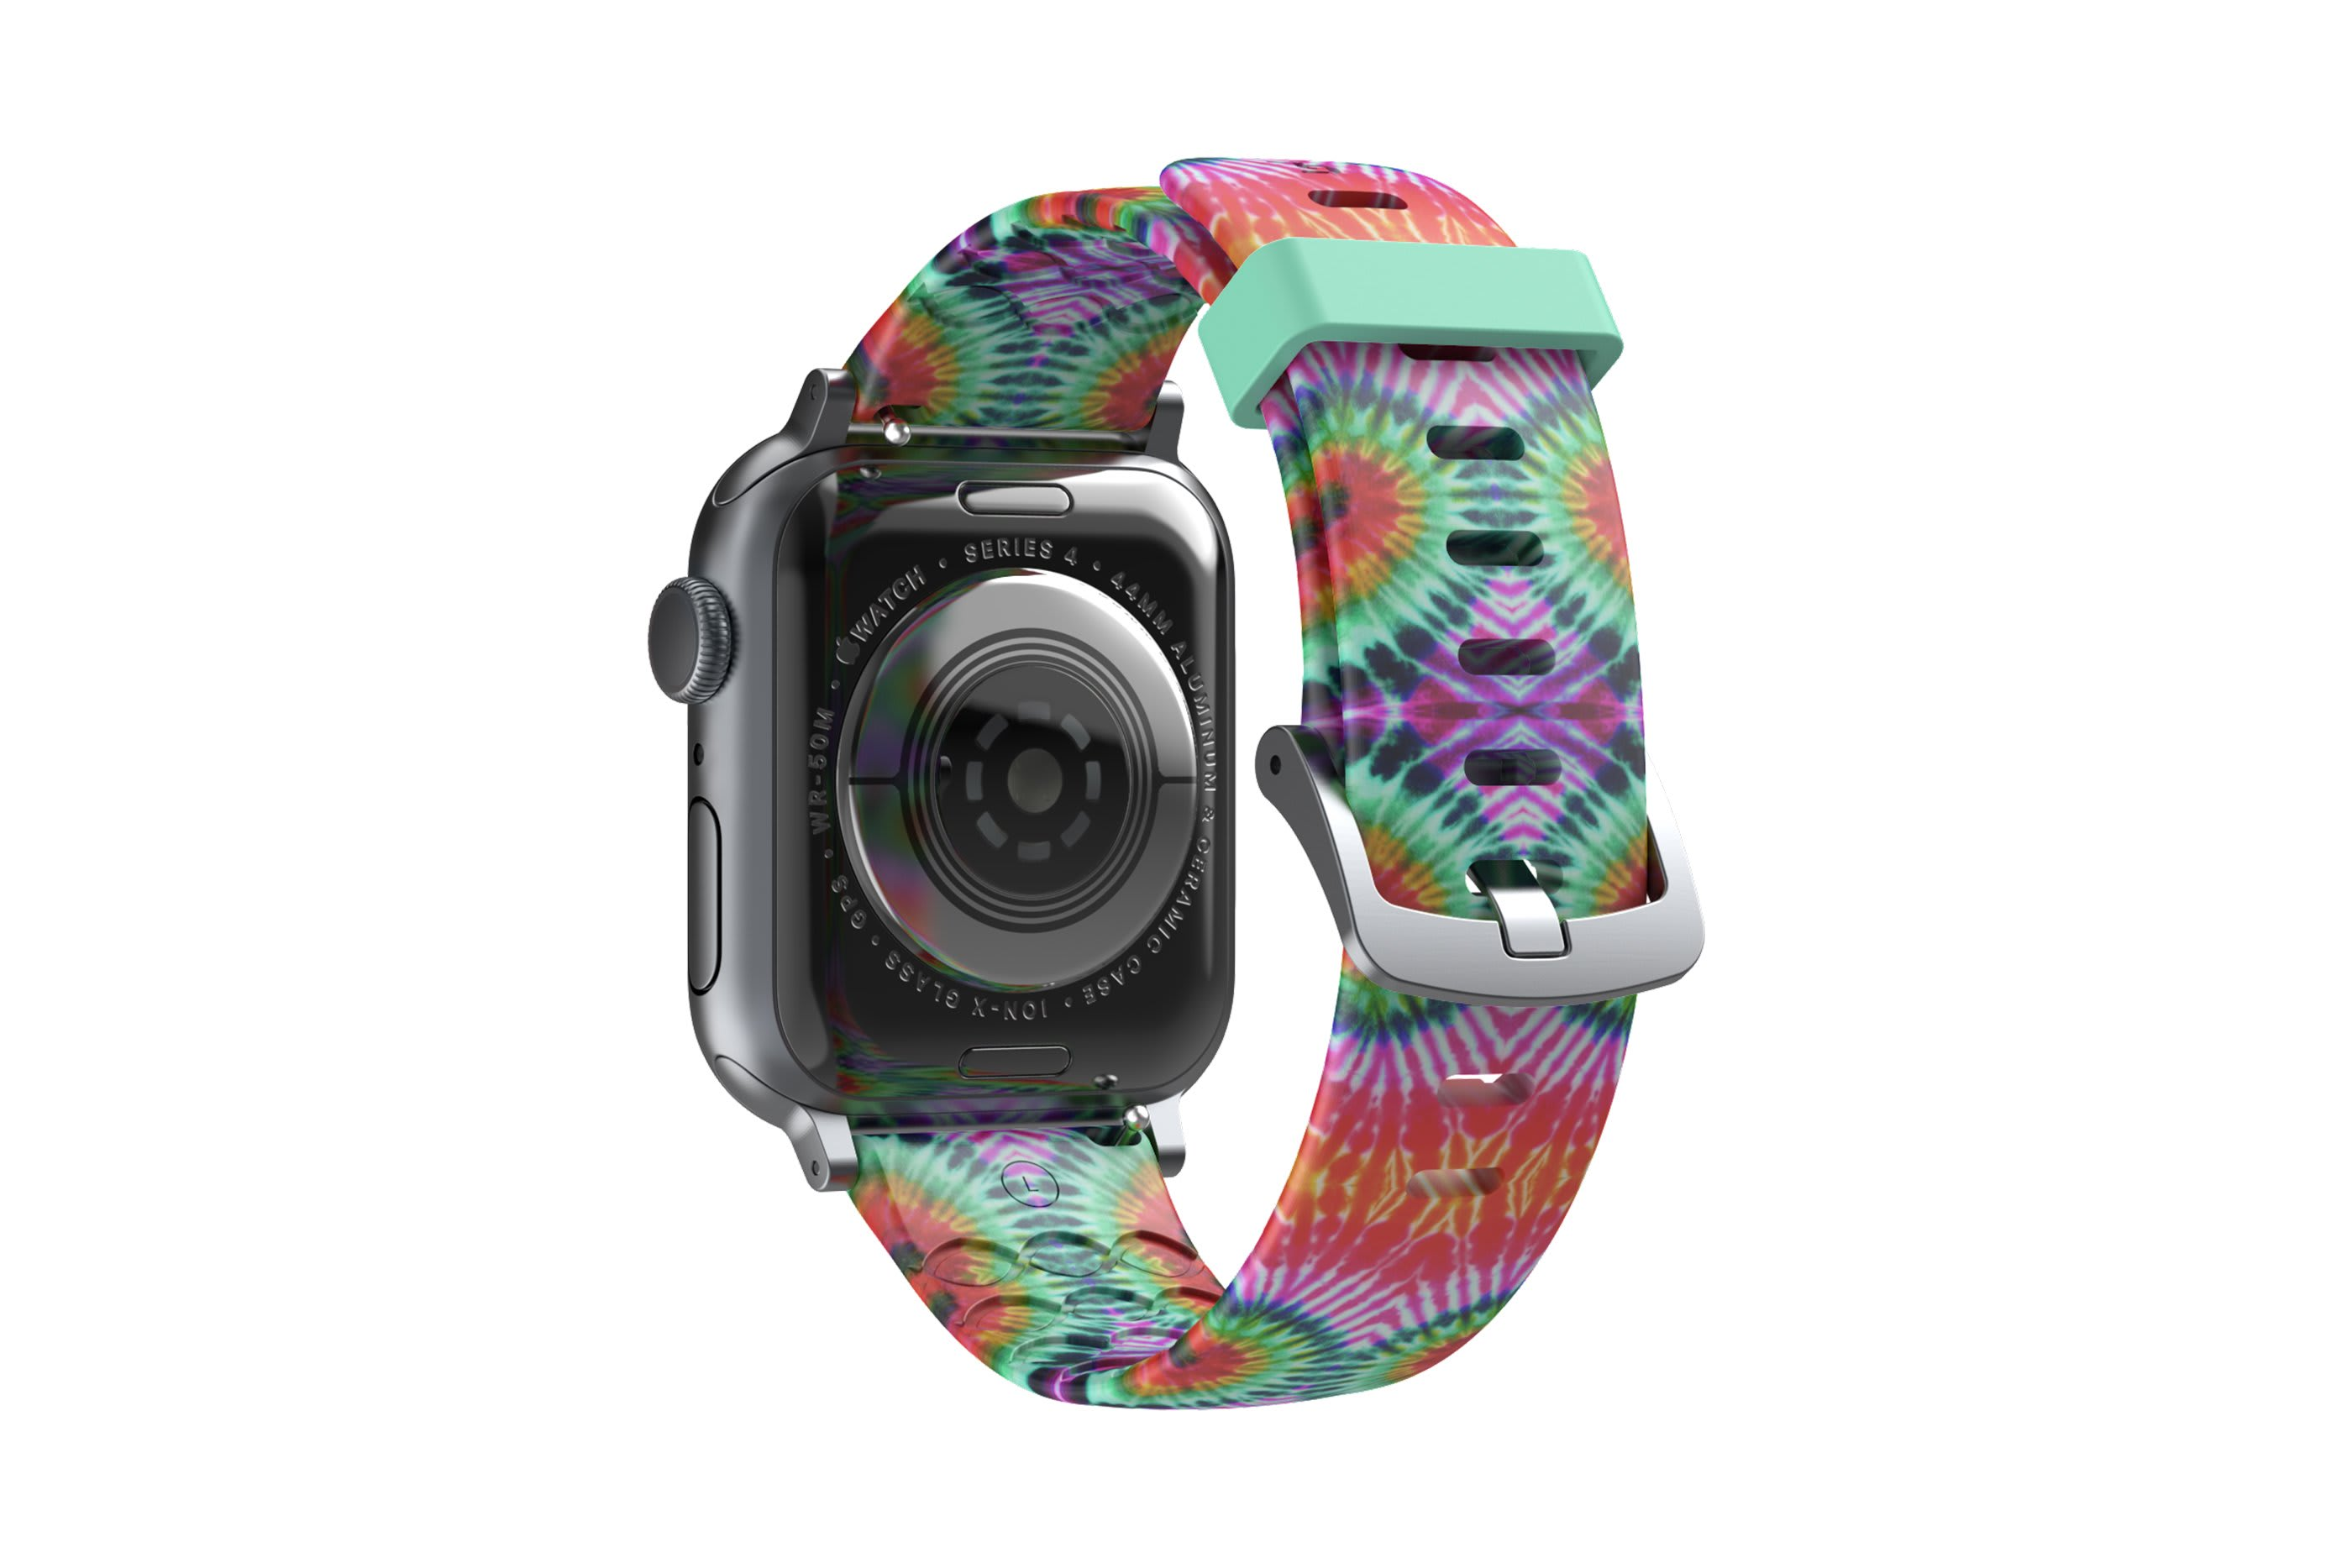 Gypsy Eyes  apple watch band with silver hardware viewed from top down